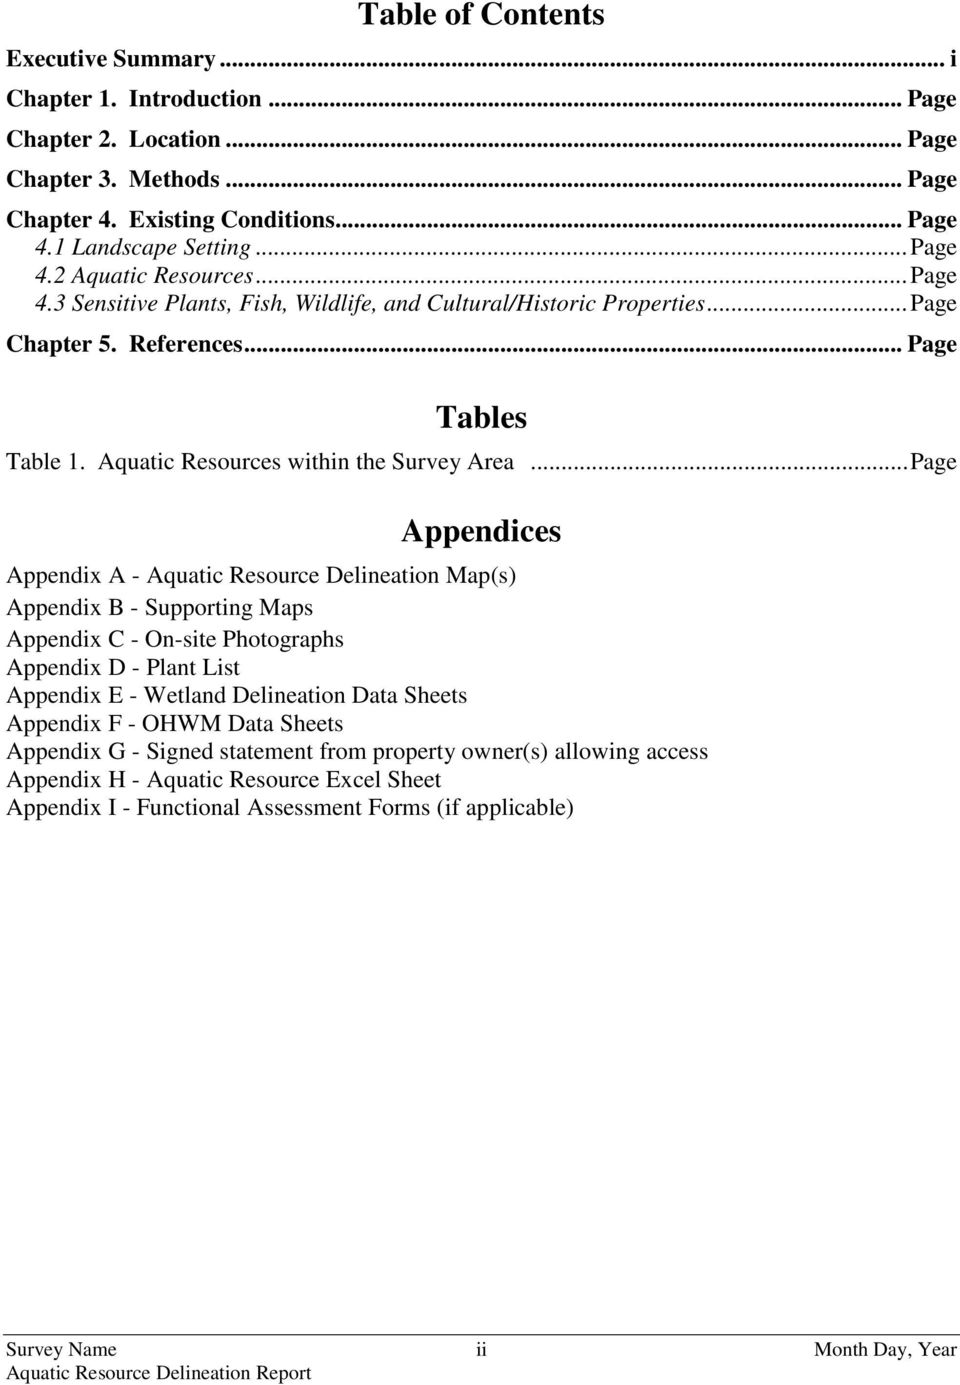 .. Page Appendices Appendix A - Aquatic Resource Delineation Map(s) Appendix B - Supporting Maps Appendix C - On-site Photographs Appendix D - Plant List Appendix E - Wetland Delineation Data Sheets